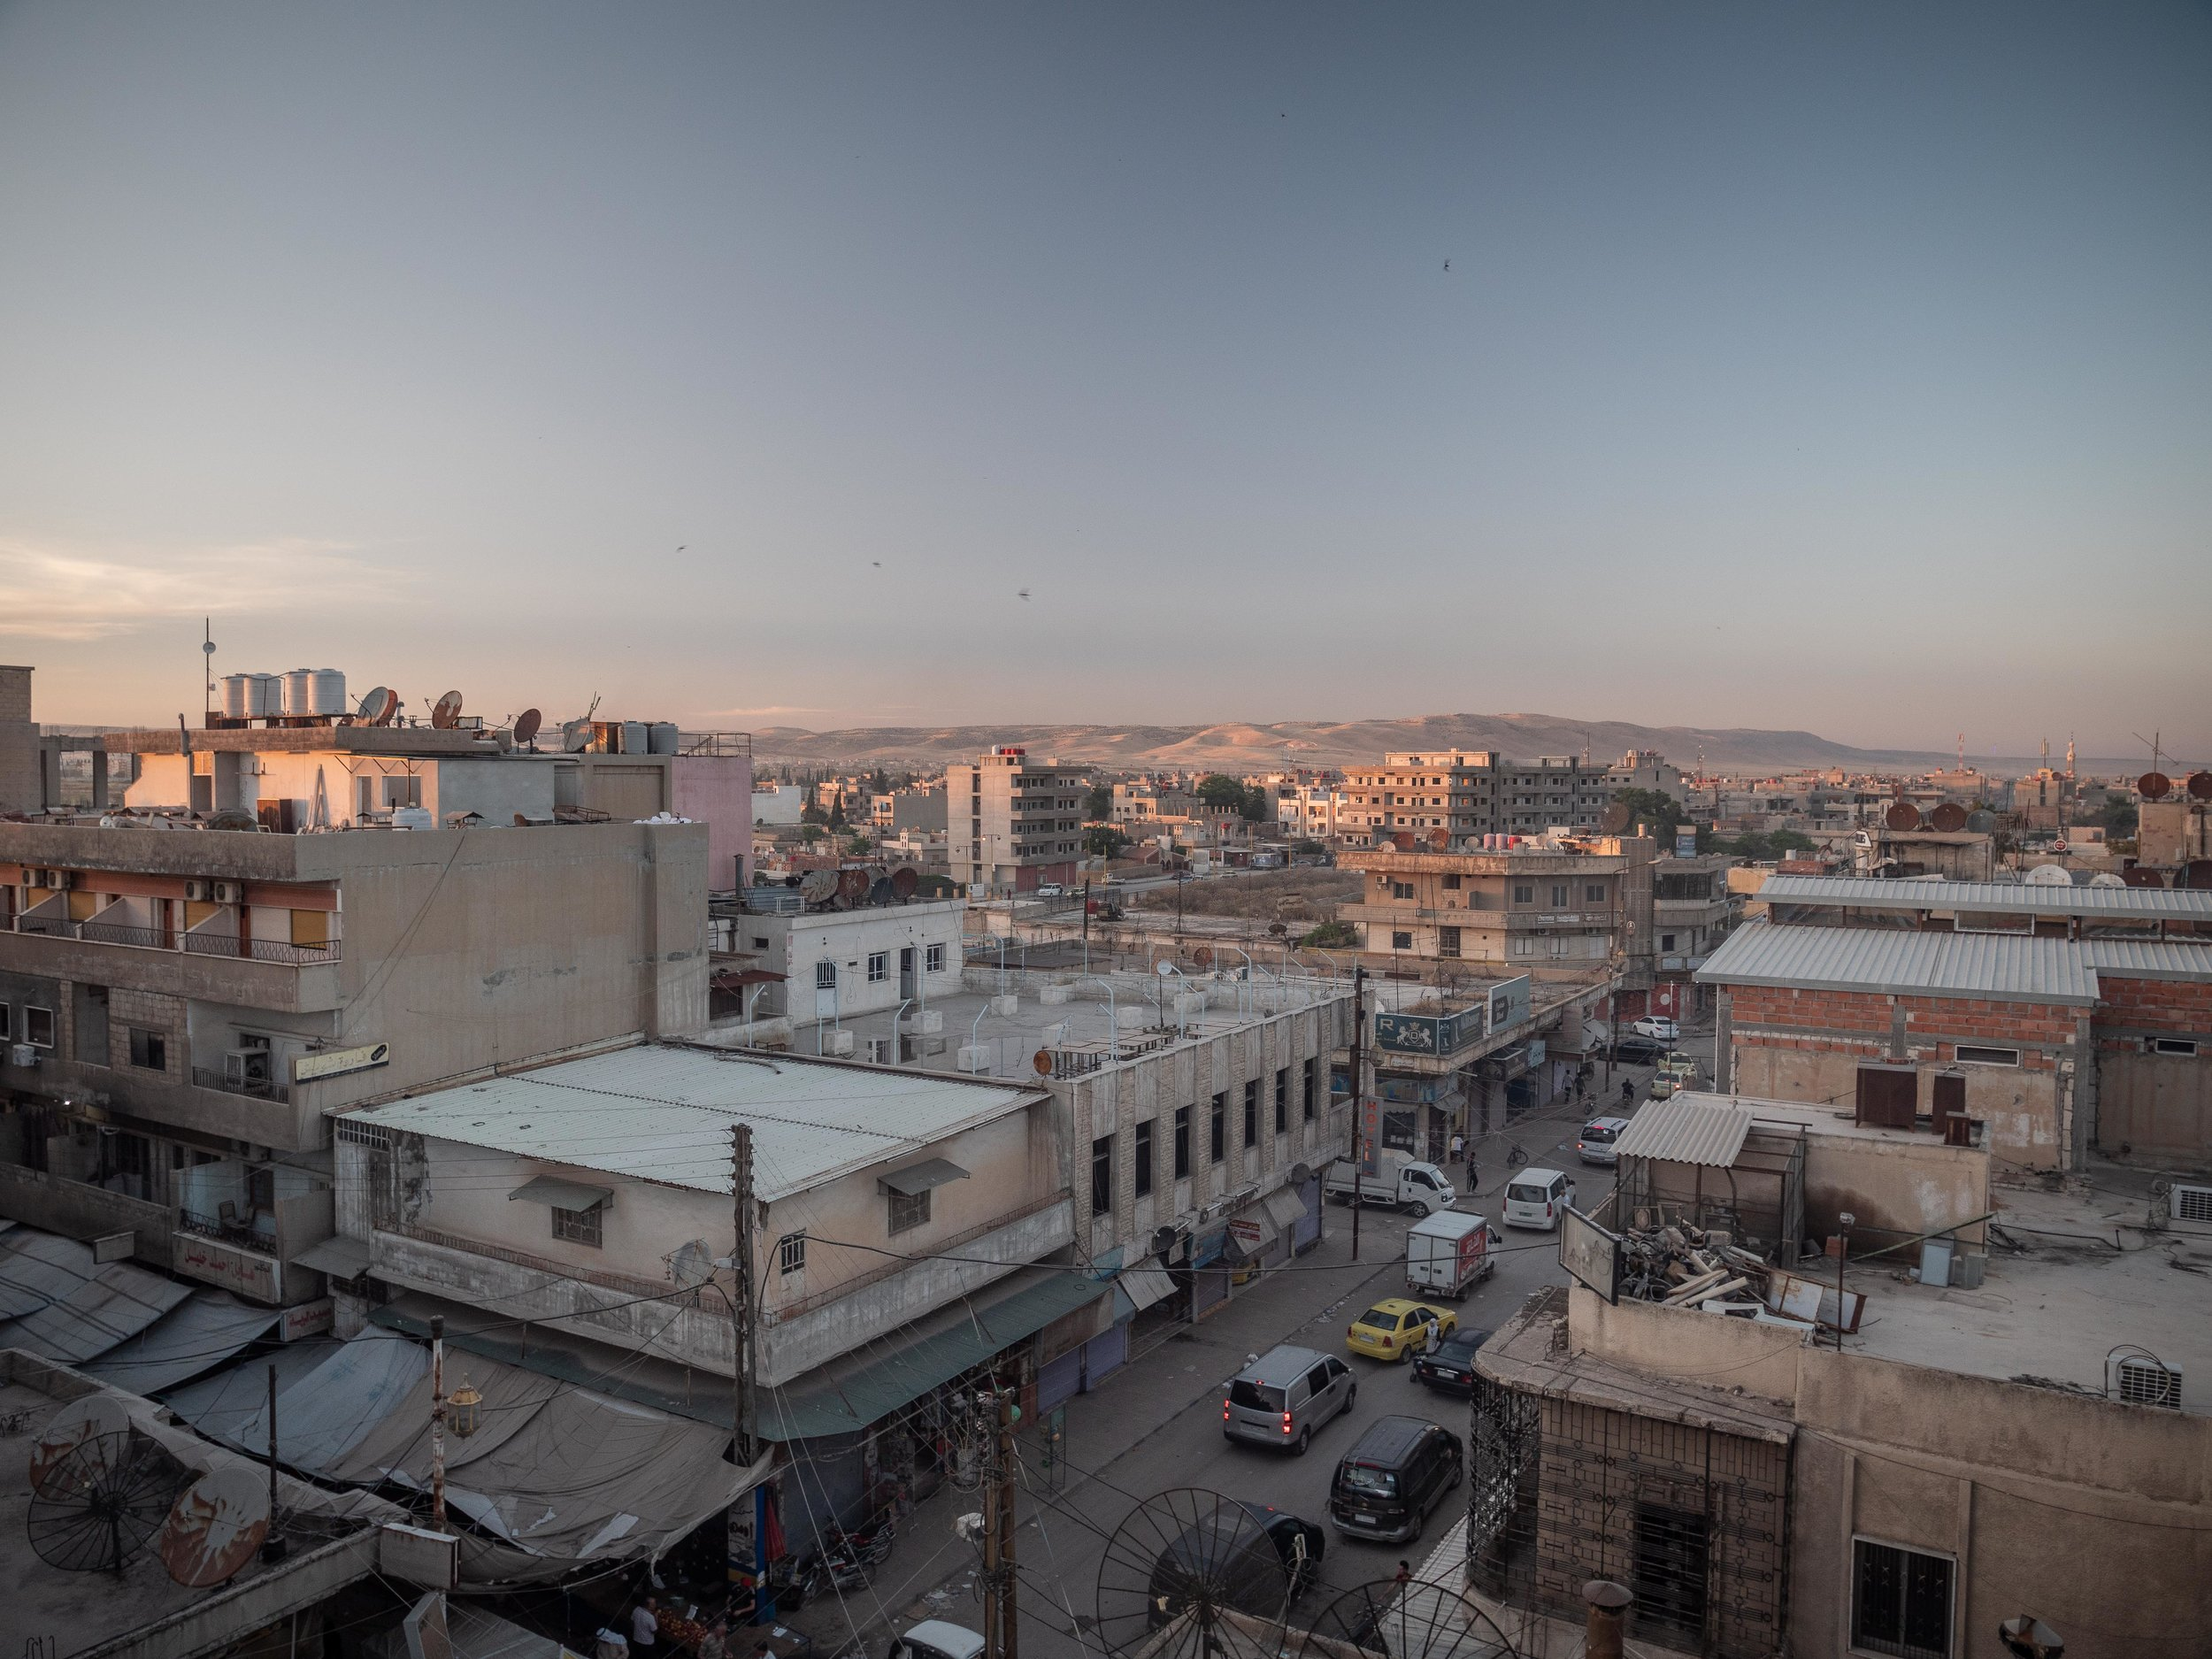 30/05/19, Al Qamishli, Syria - A view of Qamishli, in Syria. The city is divided in two, with the SDF ruling the larger part of the city and the regular Syrian army loyal to Assad ruling over the airport area.